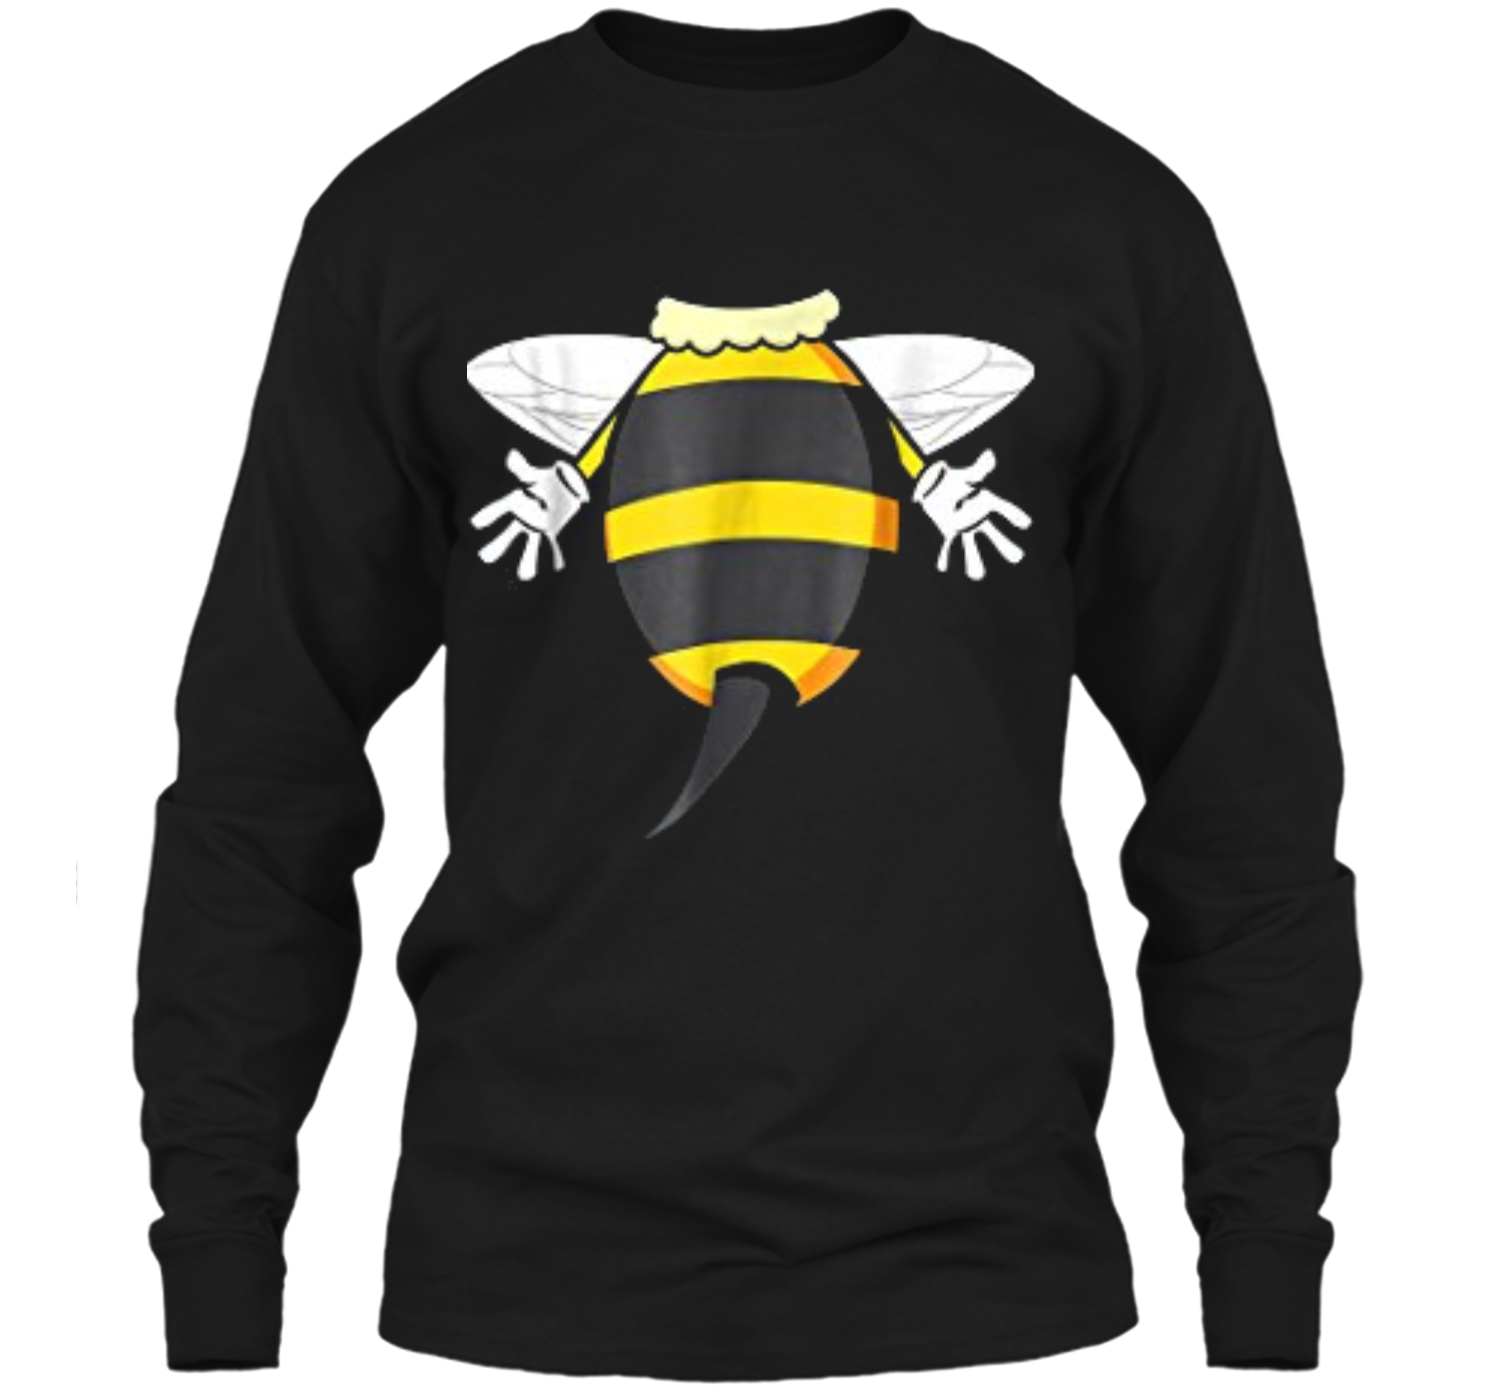 a76a1056d Funny Bee Costume Easy - Honeybee Halloween Cheap Gift LS Ultra Cotton  Tshirt